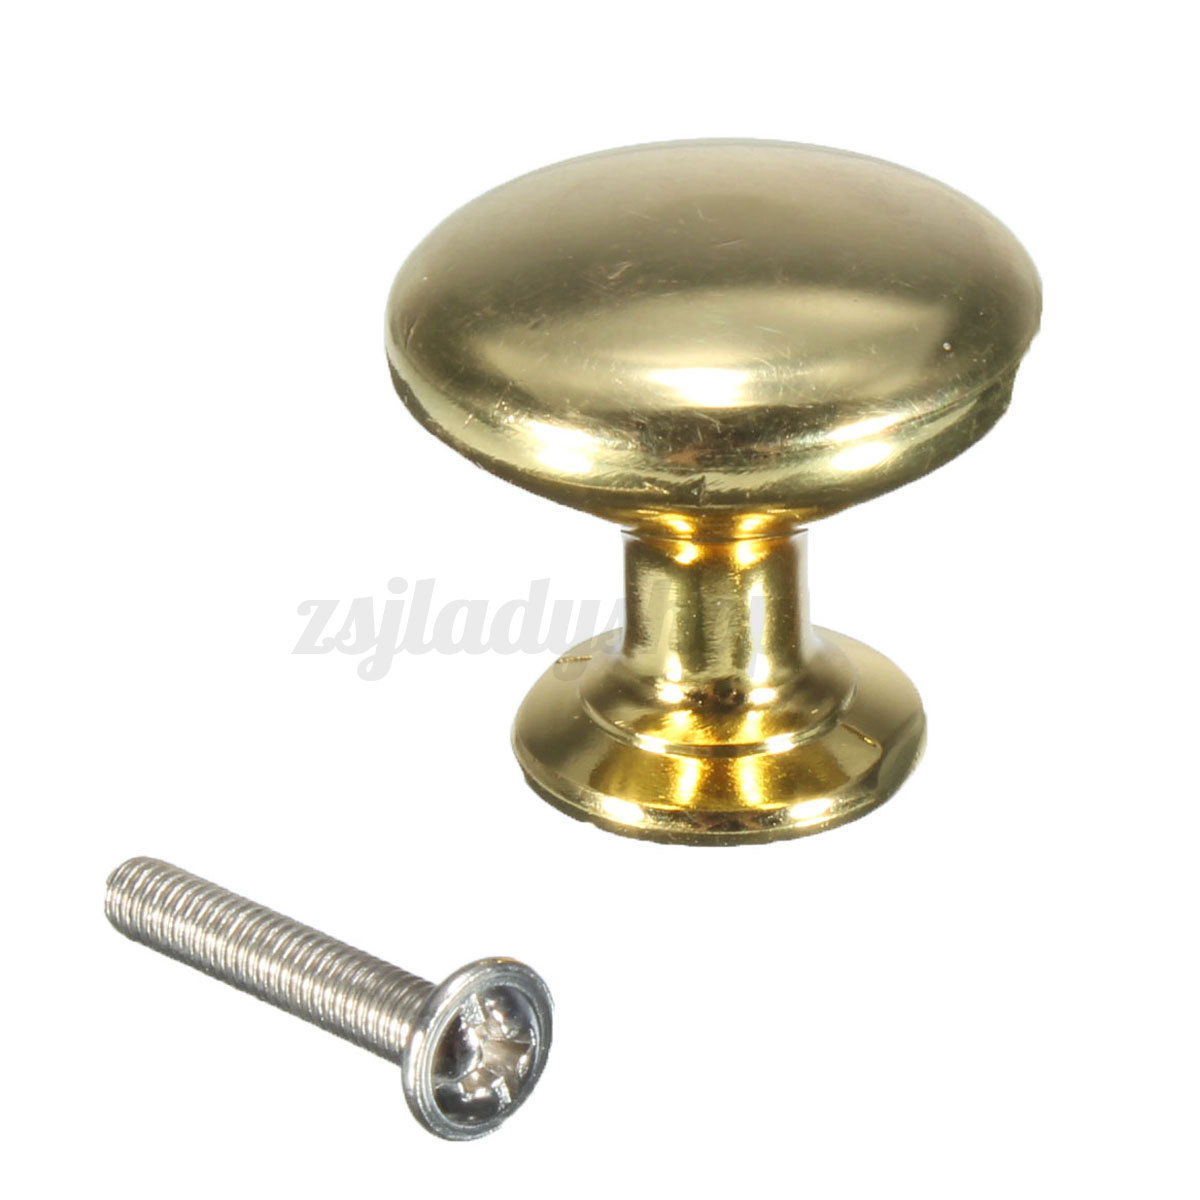 30mm round cupboard kitchen drawer furniture door cabinet pull knob handle brass ebay. Black Bedroom Furniture Sets. Home Design Ideas